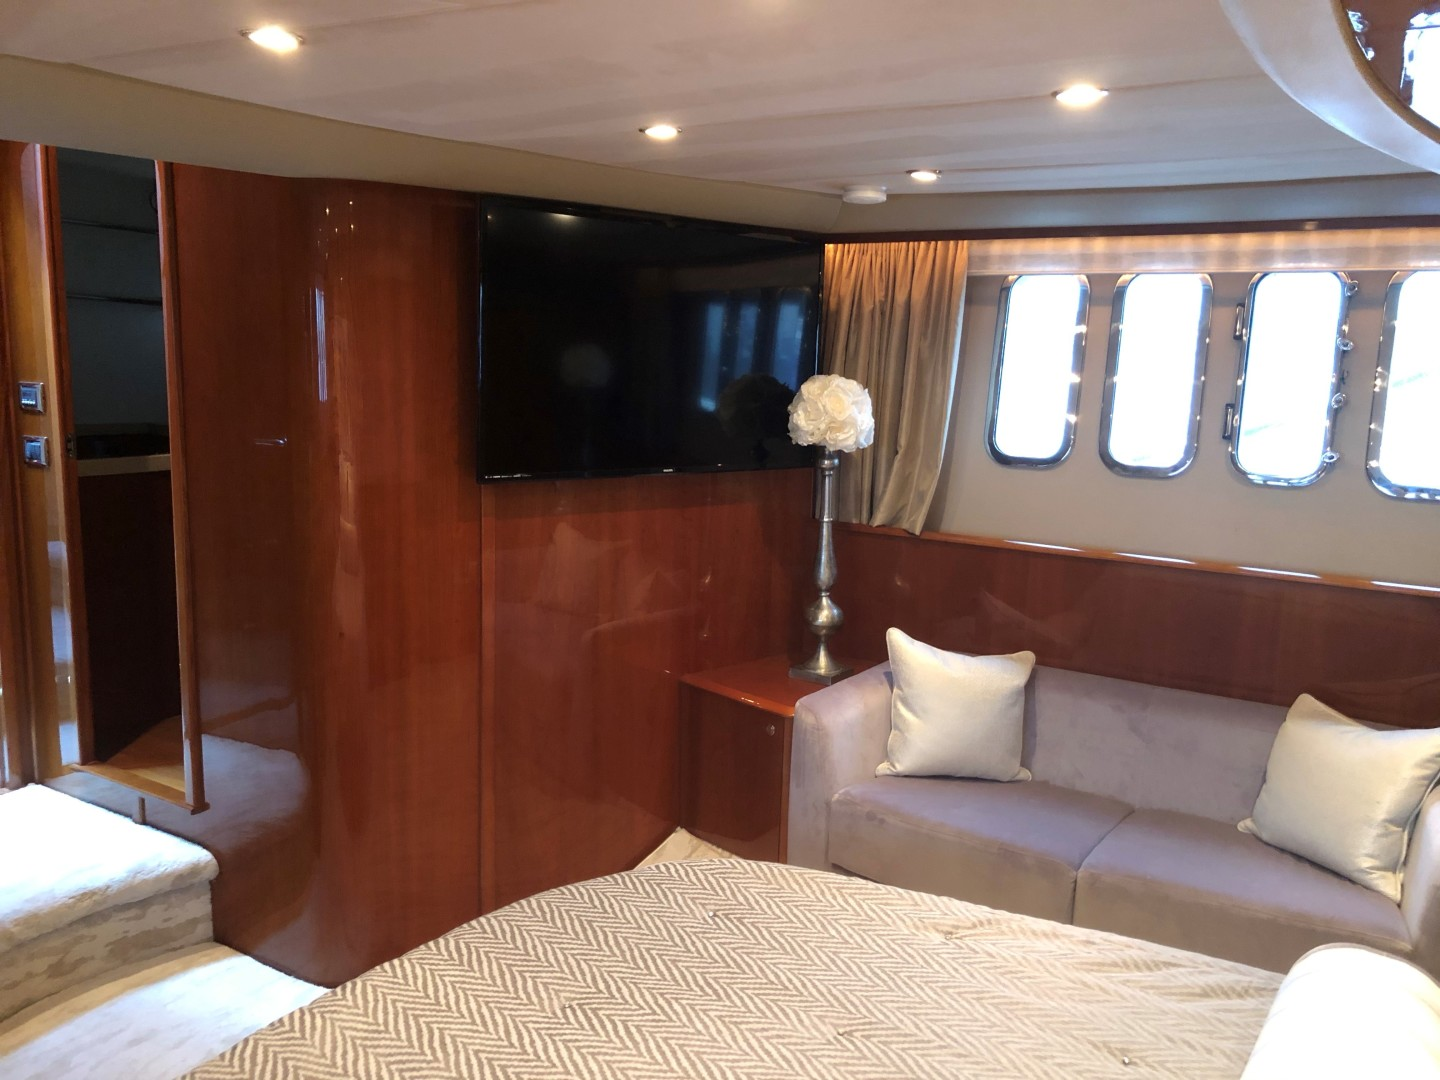 Princess-Flybridge Motor Yacht 2007-Hall Force One Palm Beach Boat Show-Florida-United States-1638228 | Thumbnail